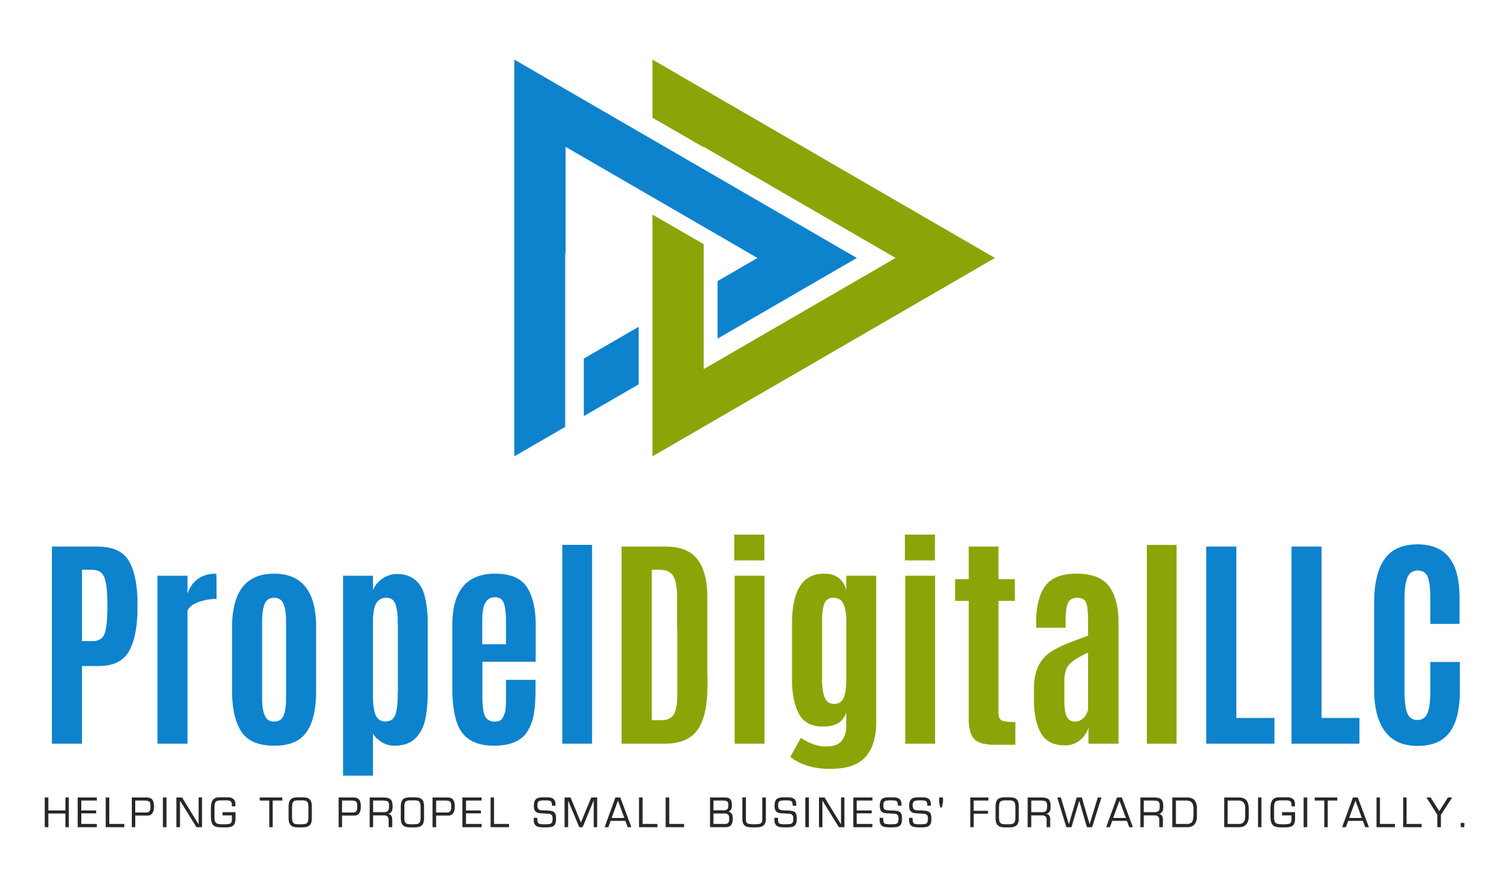 Propel Digital